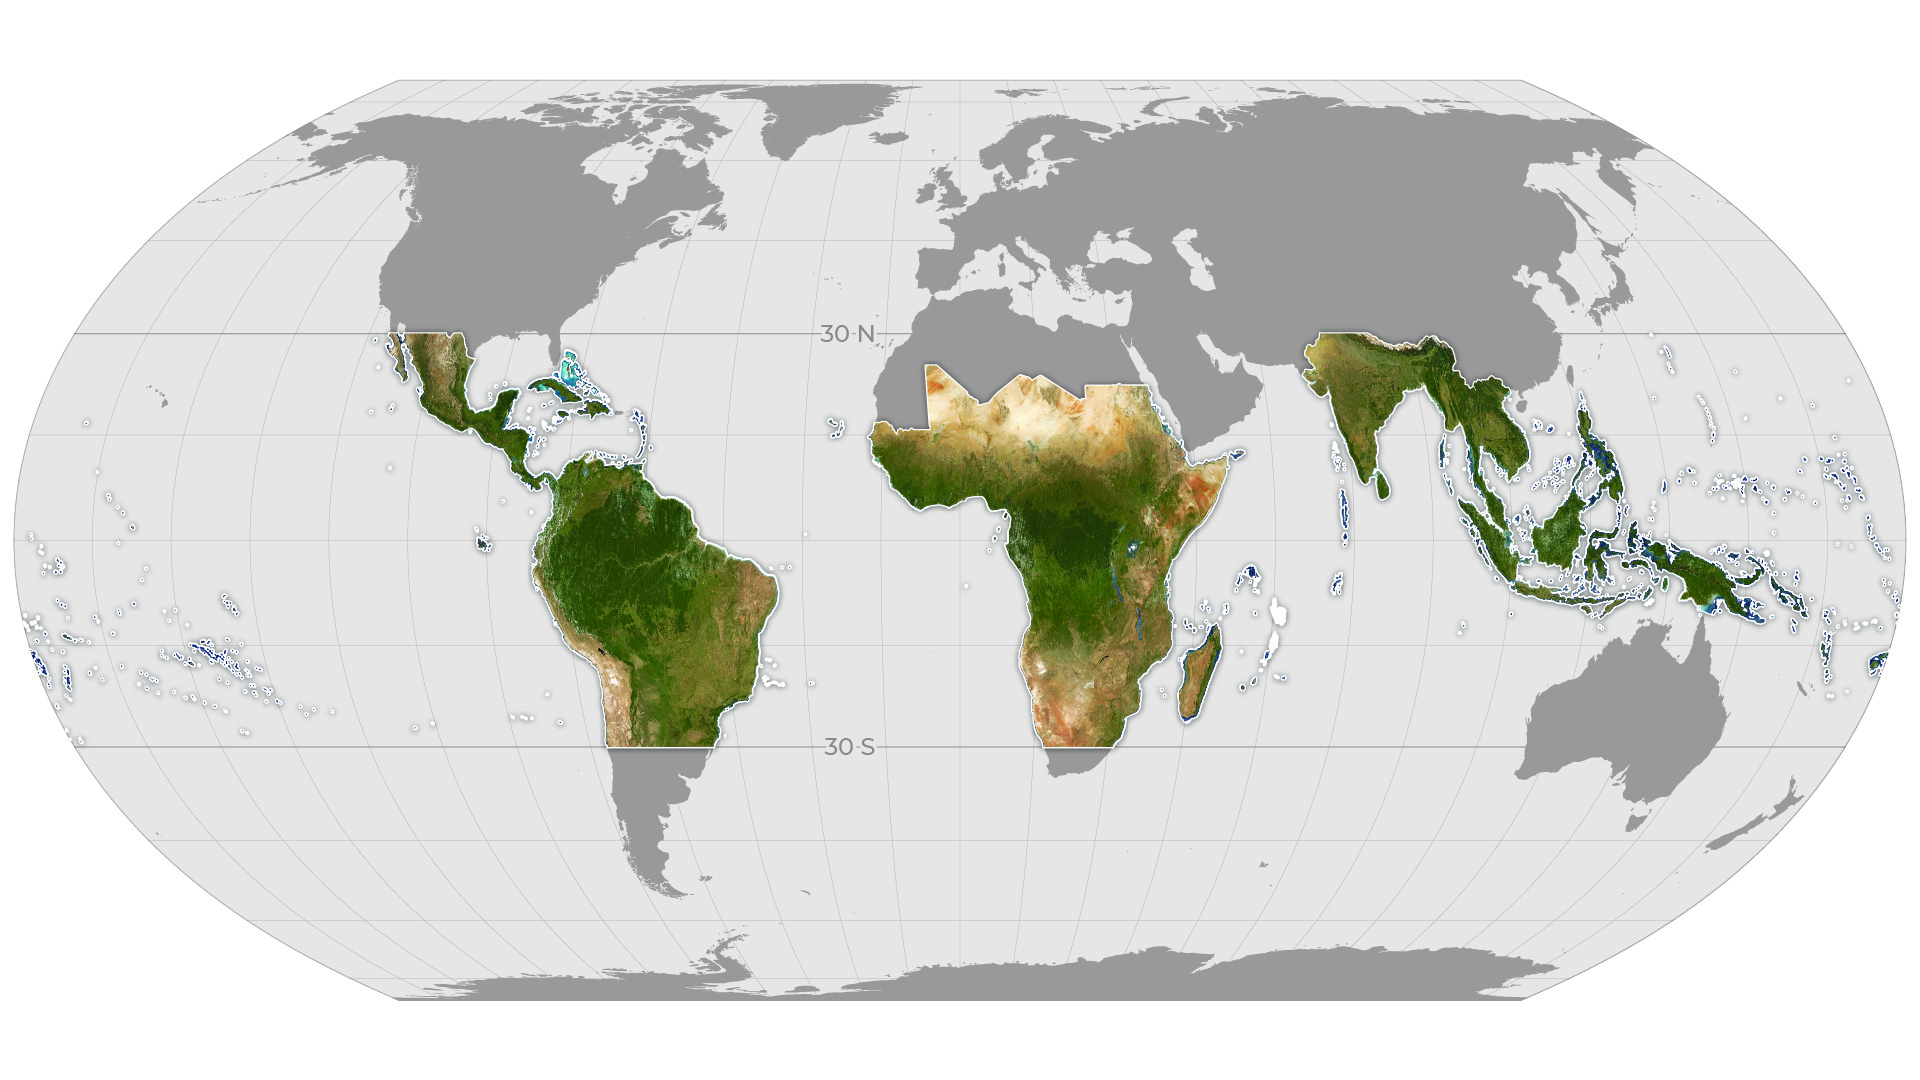 Global map showing the extent of monthly Planet Basemaps to be provided through the partnership for tropical forest monitoring. Image courtesy of Planet Labs Inc.